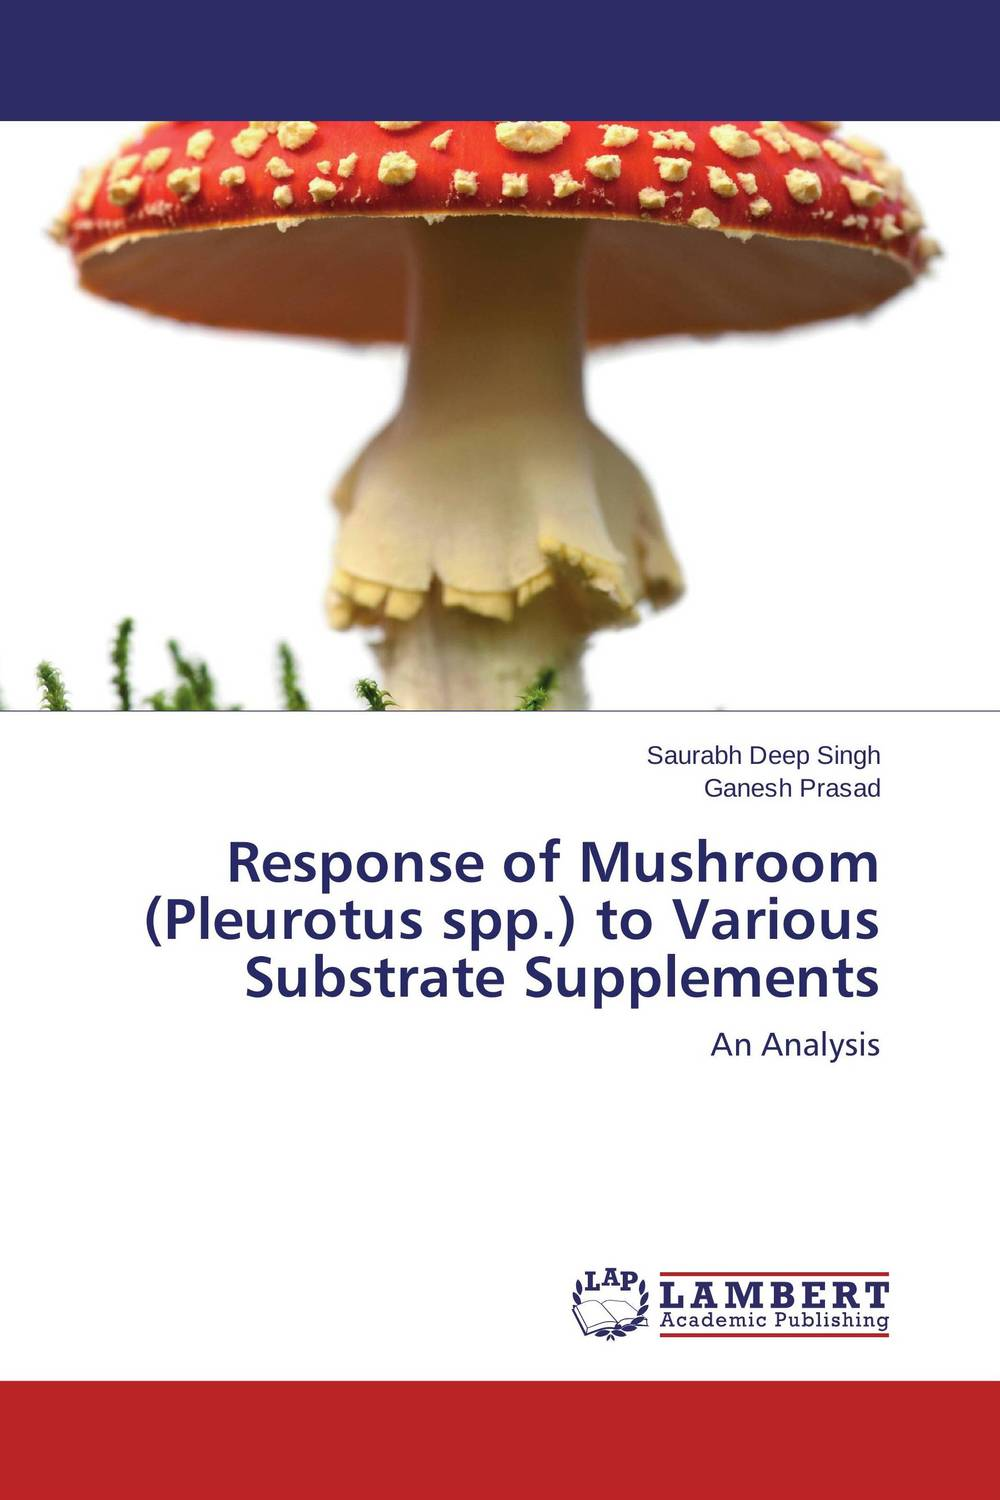 Response of Mushroom (Pleurotus spp.) to Various Substrate Supplements omega 3 fish oil supplement 1000mg 180 count triglyceride form premium pharmaceutical grade known as being one of the best health supplements for cardiovascular joint and brain health benefits easy to swallow softgel capsules natural lemon